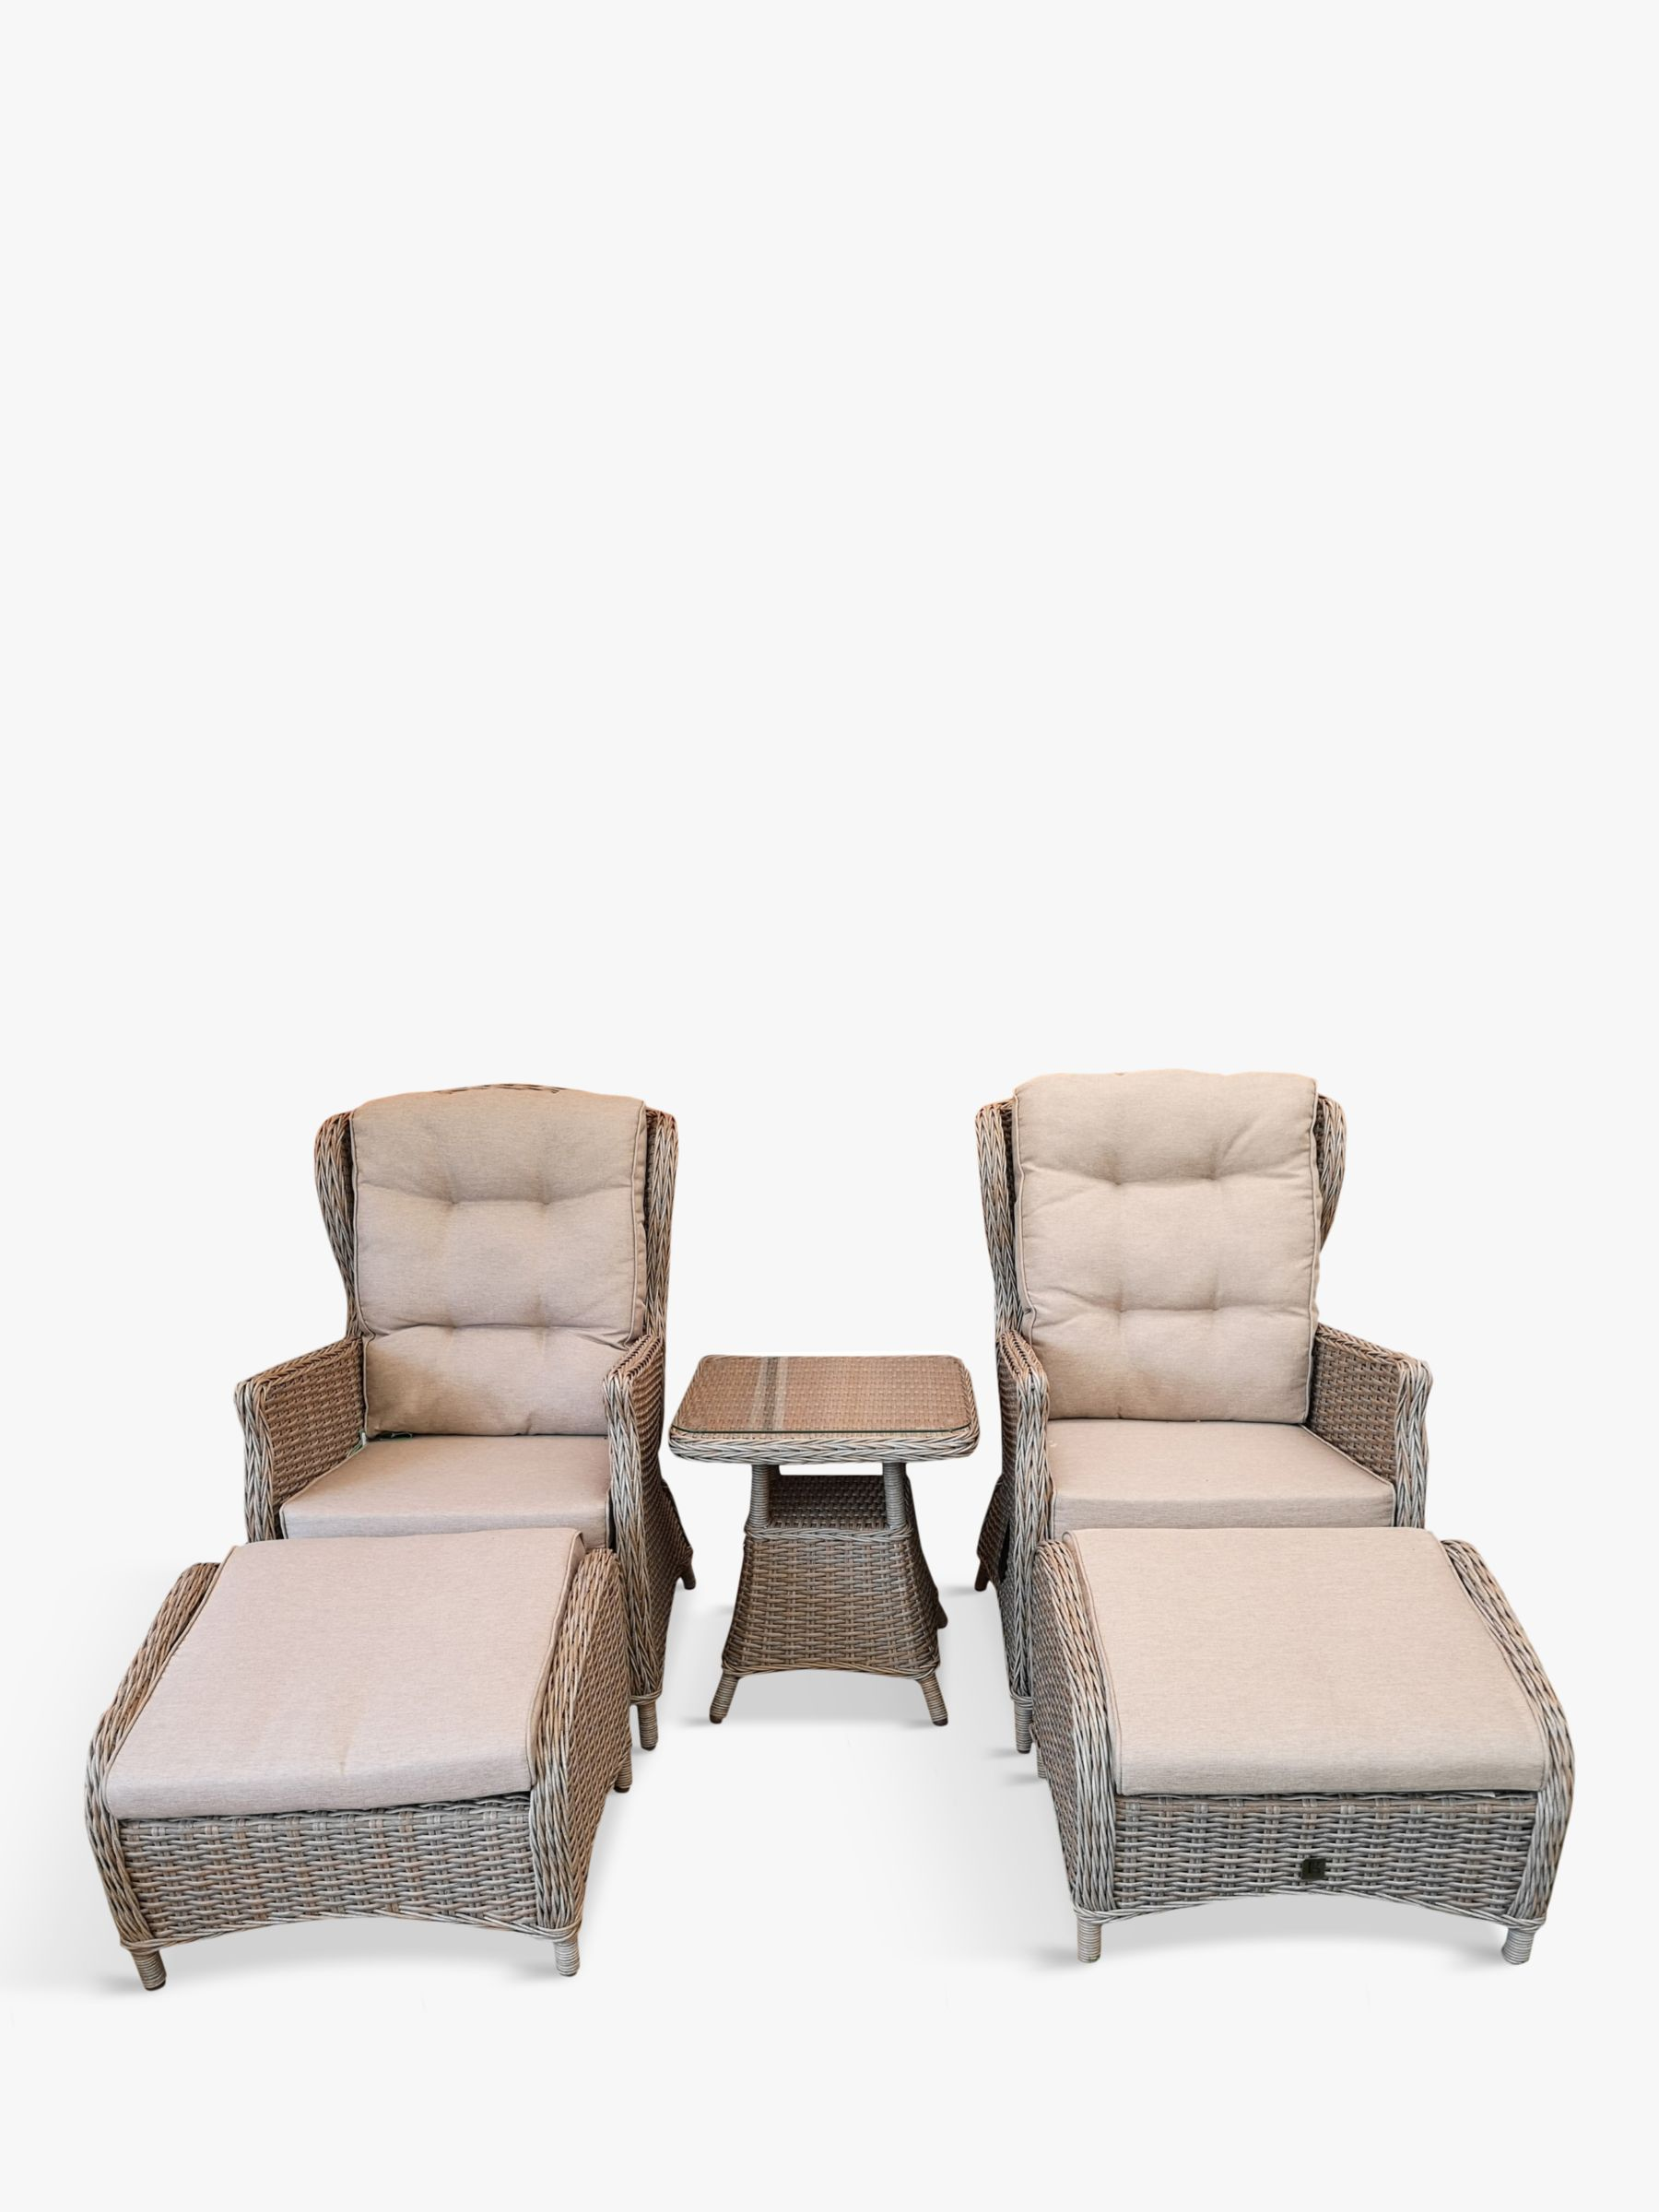 LG Outdoor LG Outdoor Toulon Relaxing 2-Seat Reclining Garden Armchairs & Table Set, Brown